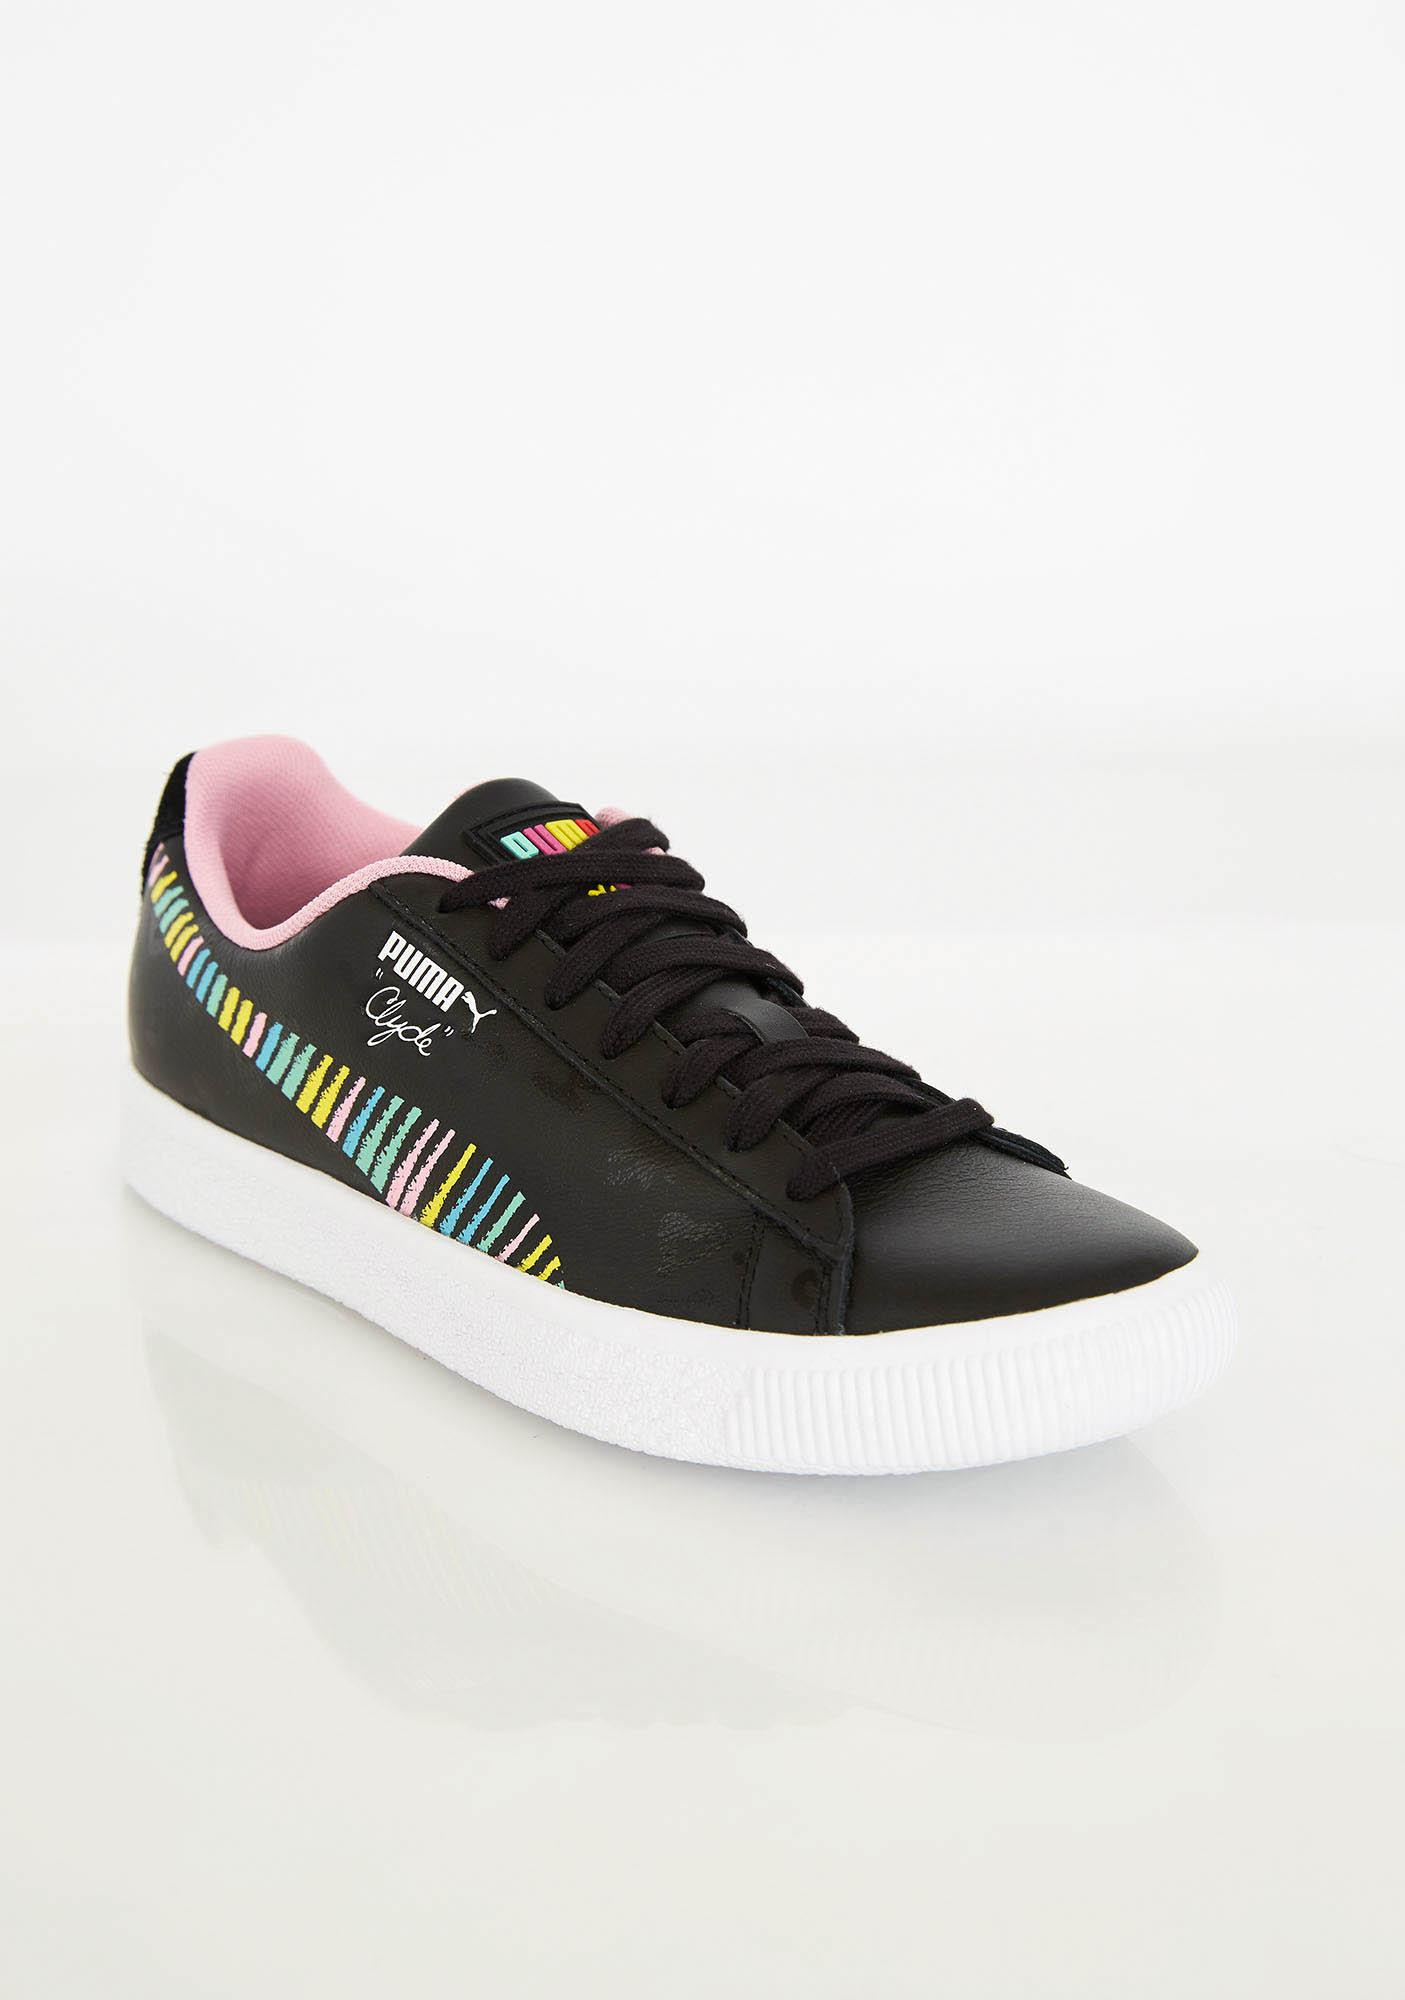 41a510e164 x Bradley Theodore Clyde Sneakers